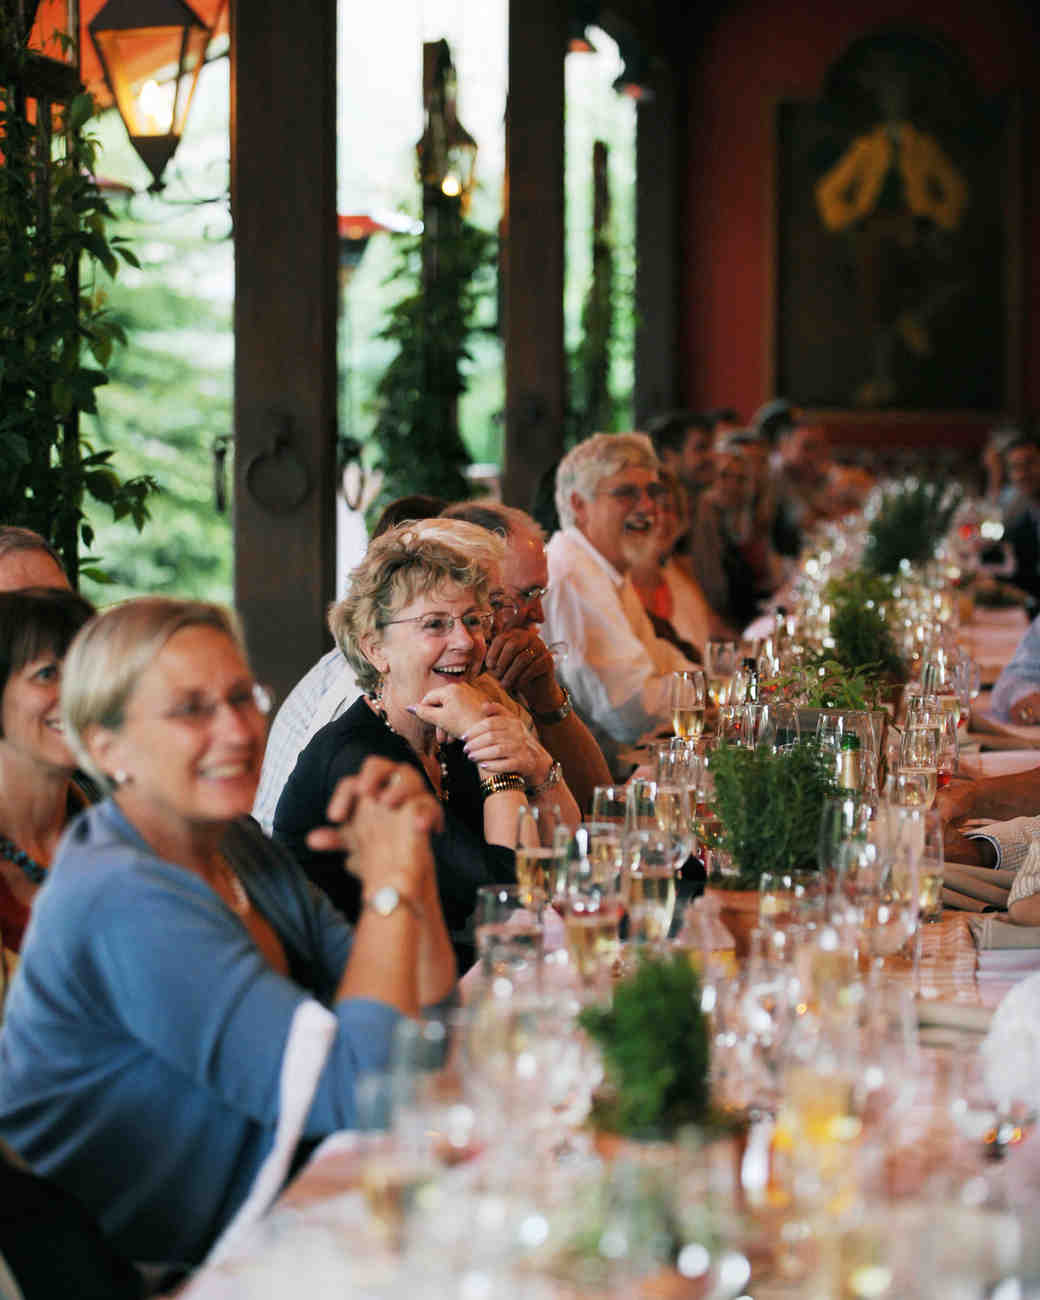 Guests Laughing at a Wedding Toast